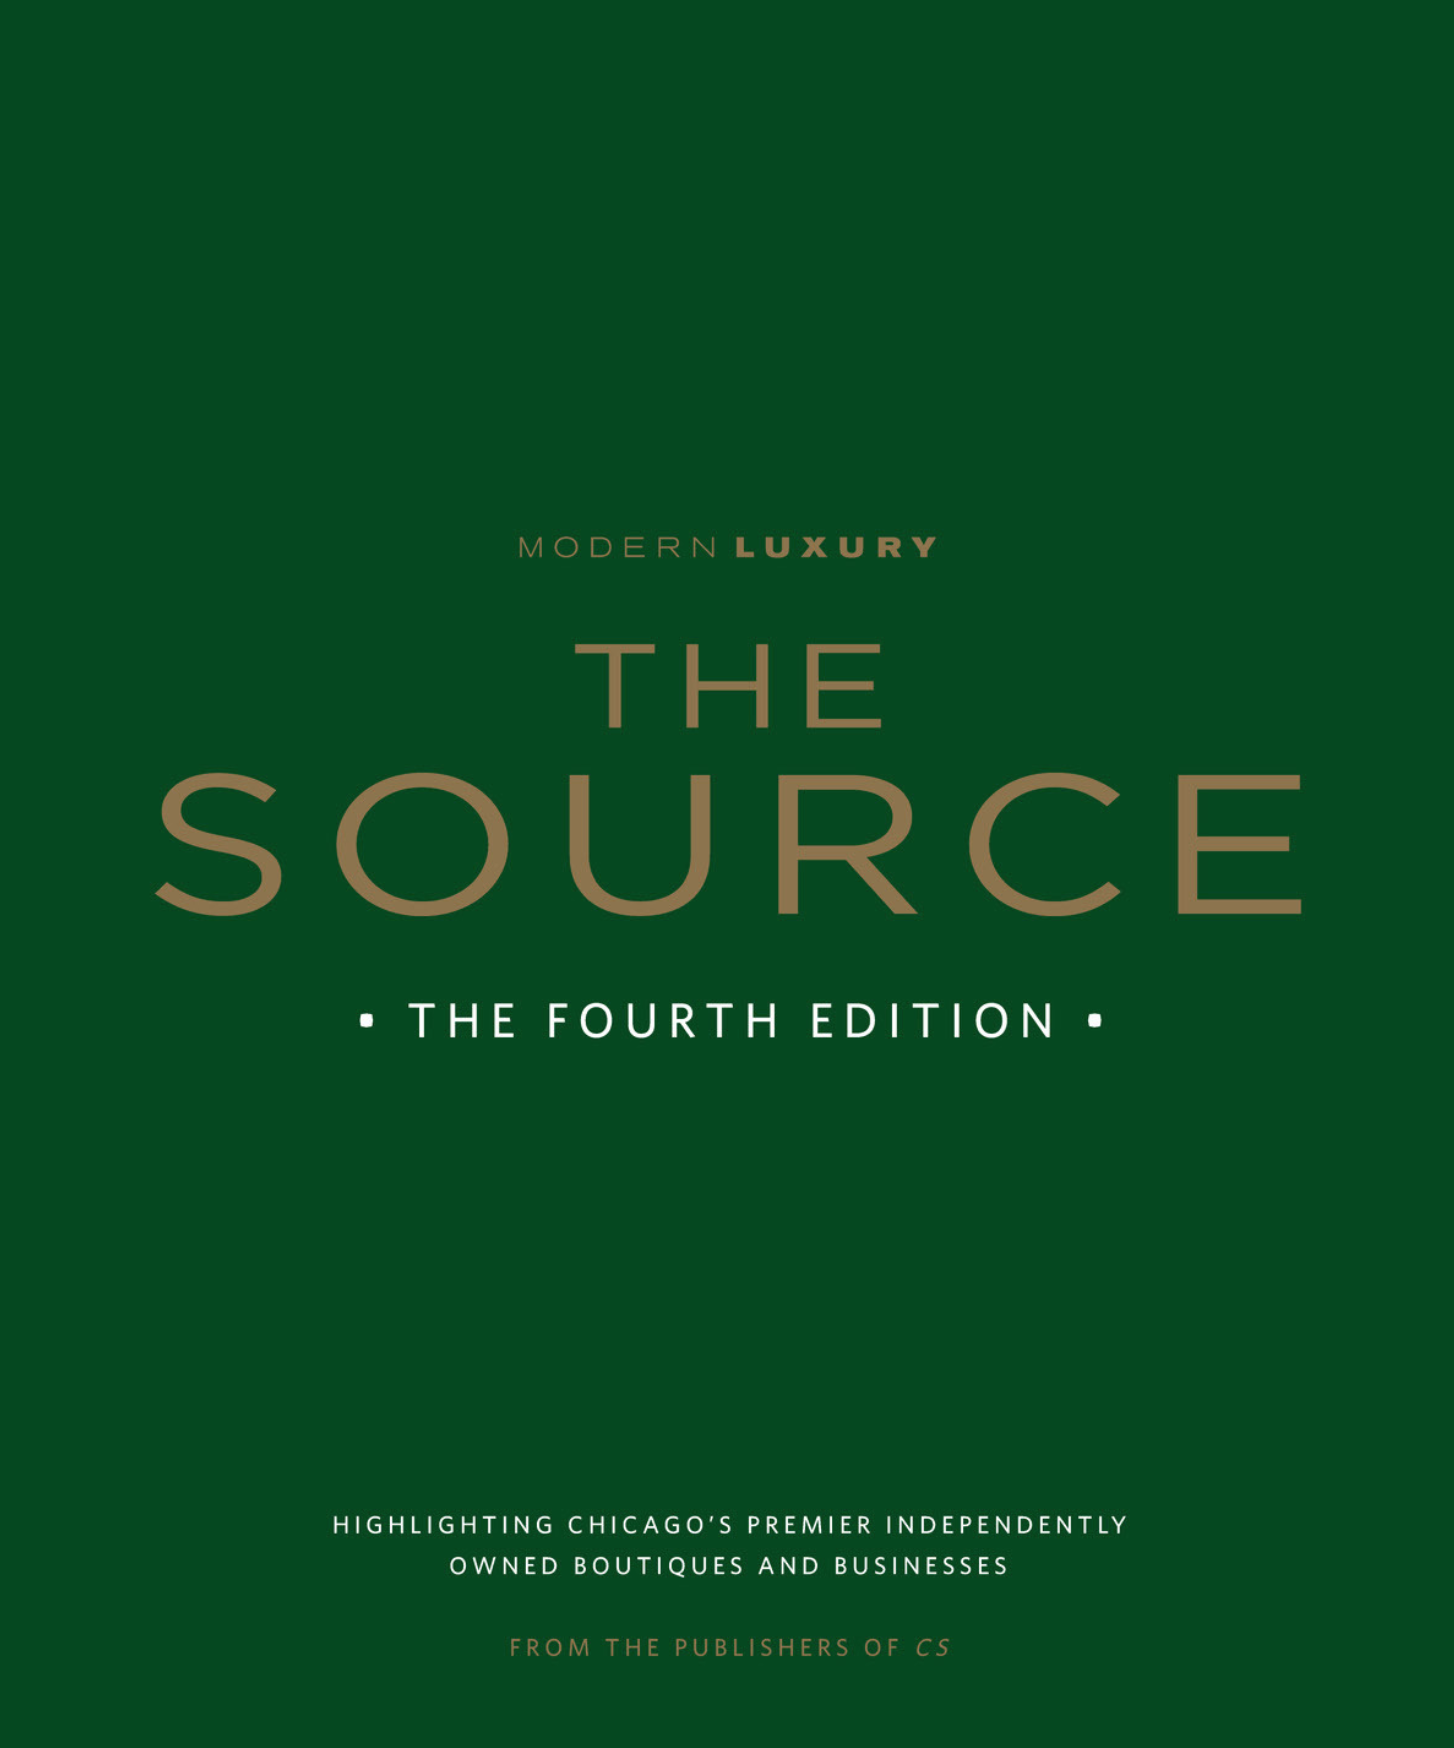 The-Source-Book-CS-Modern-Luxury-Mary-Carol-Fitzgerald-Photographer.png